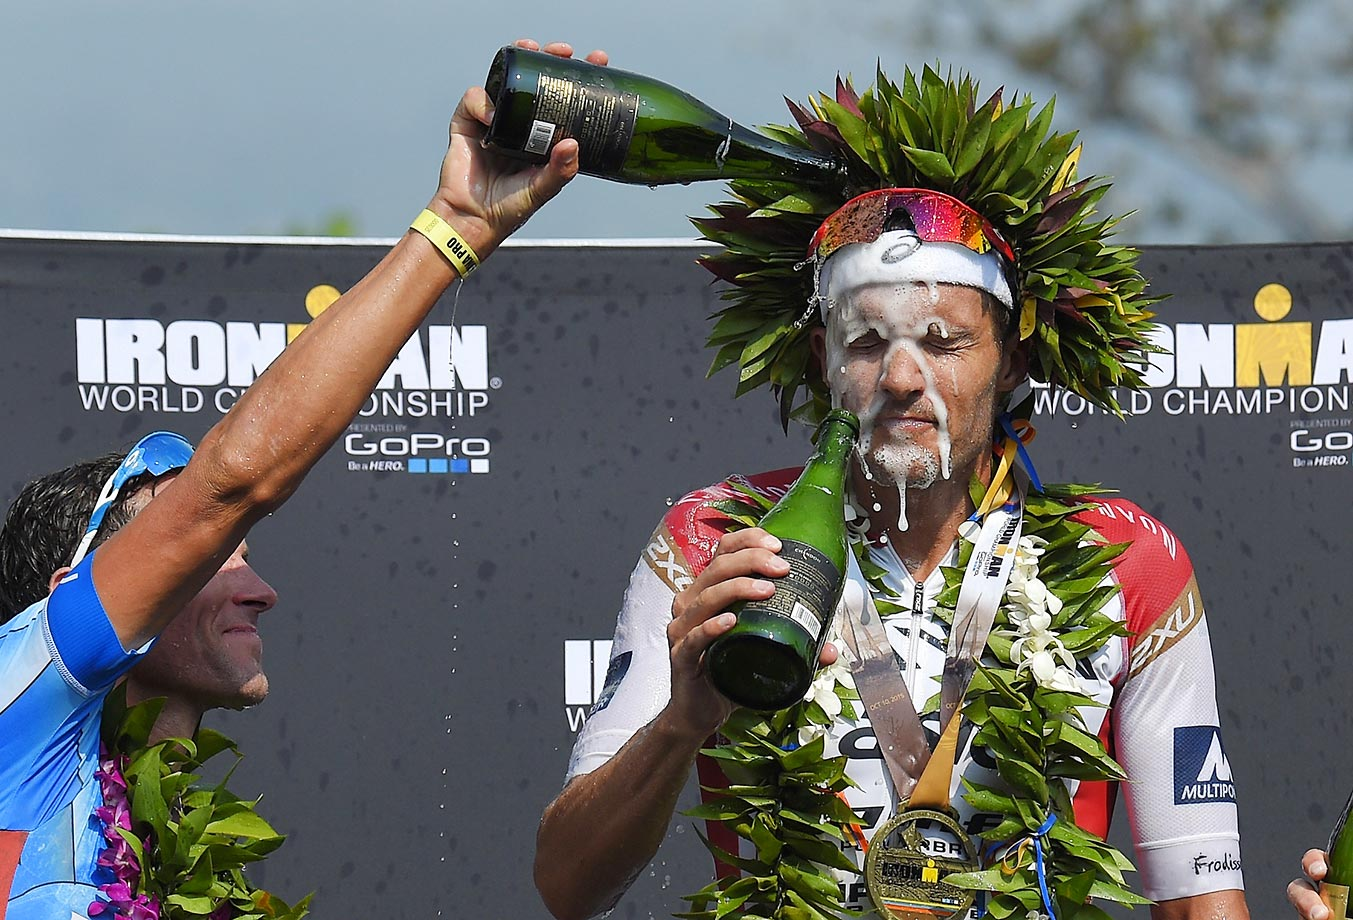 Jan Frodeno of Germany gets doused by champagne after winning the Ironman World Championship triathlon in Hawaii.